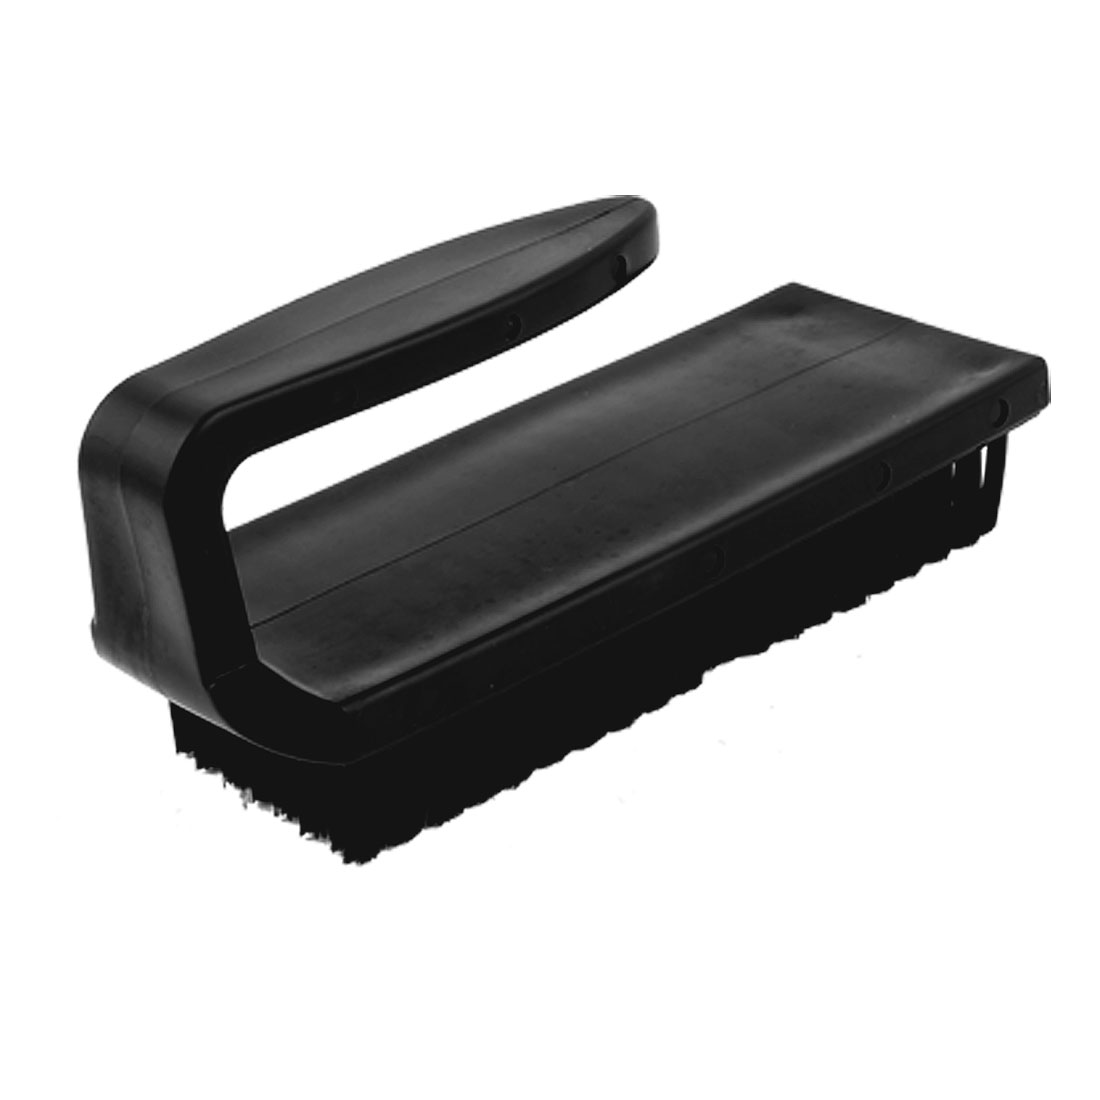 17.8 x 6.5cm U Type Black Plastic Handle Static Rework ESD Anti-Static Brush Cleaning Tool Comb